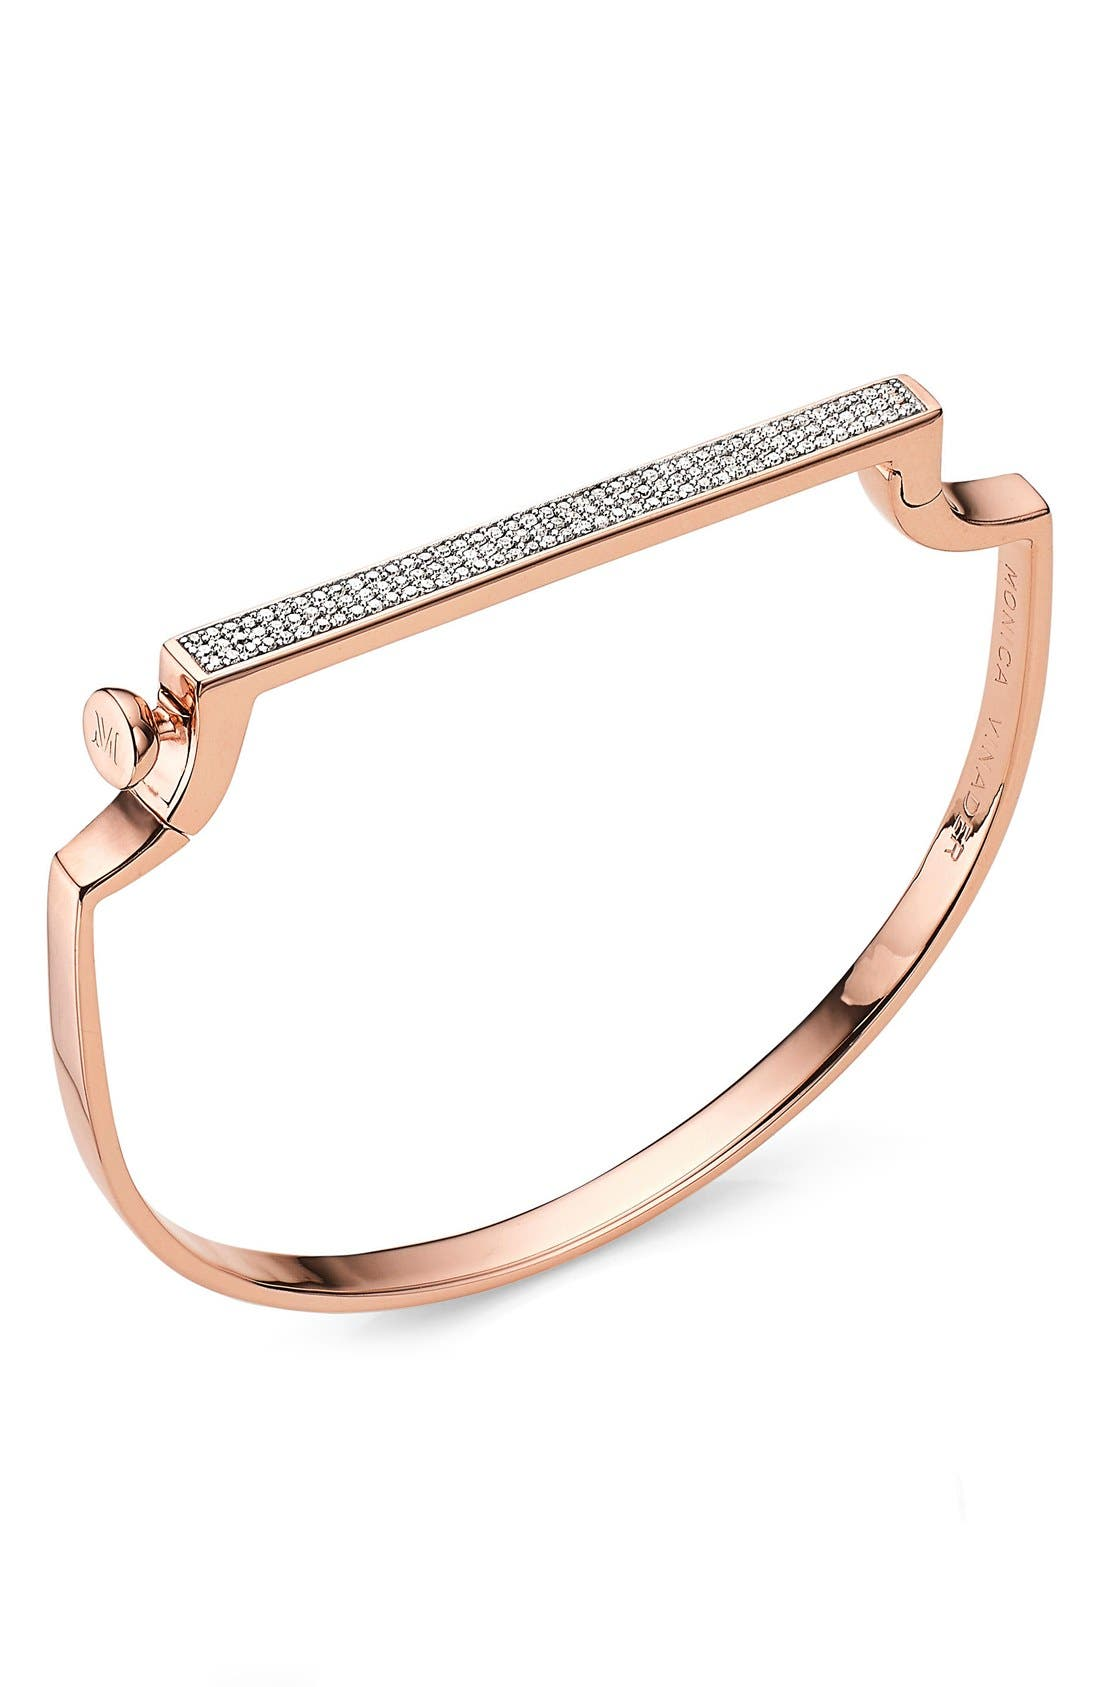 Alternate Image 1 Selected - Monica Vinader Signature Thin Diamond Bangle